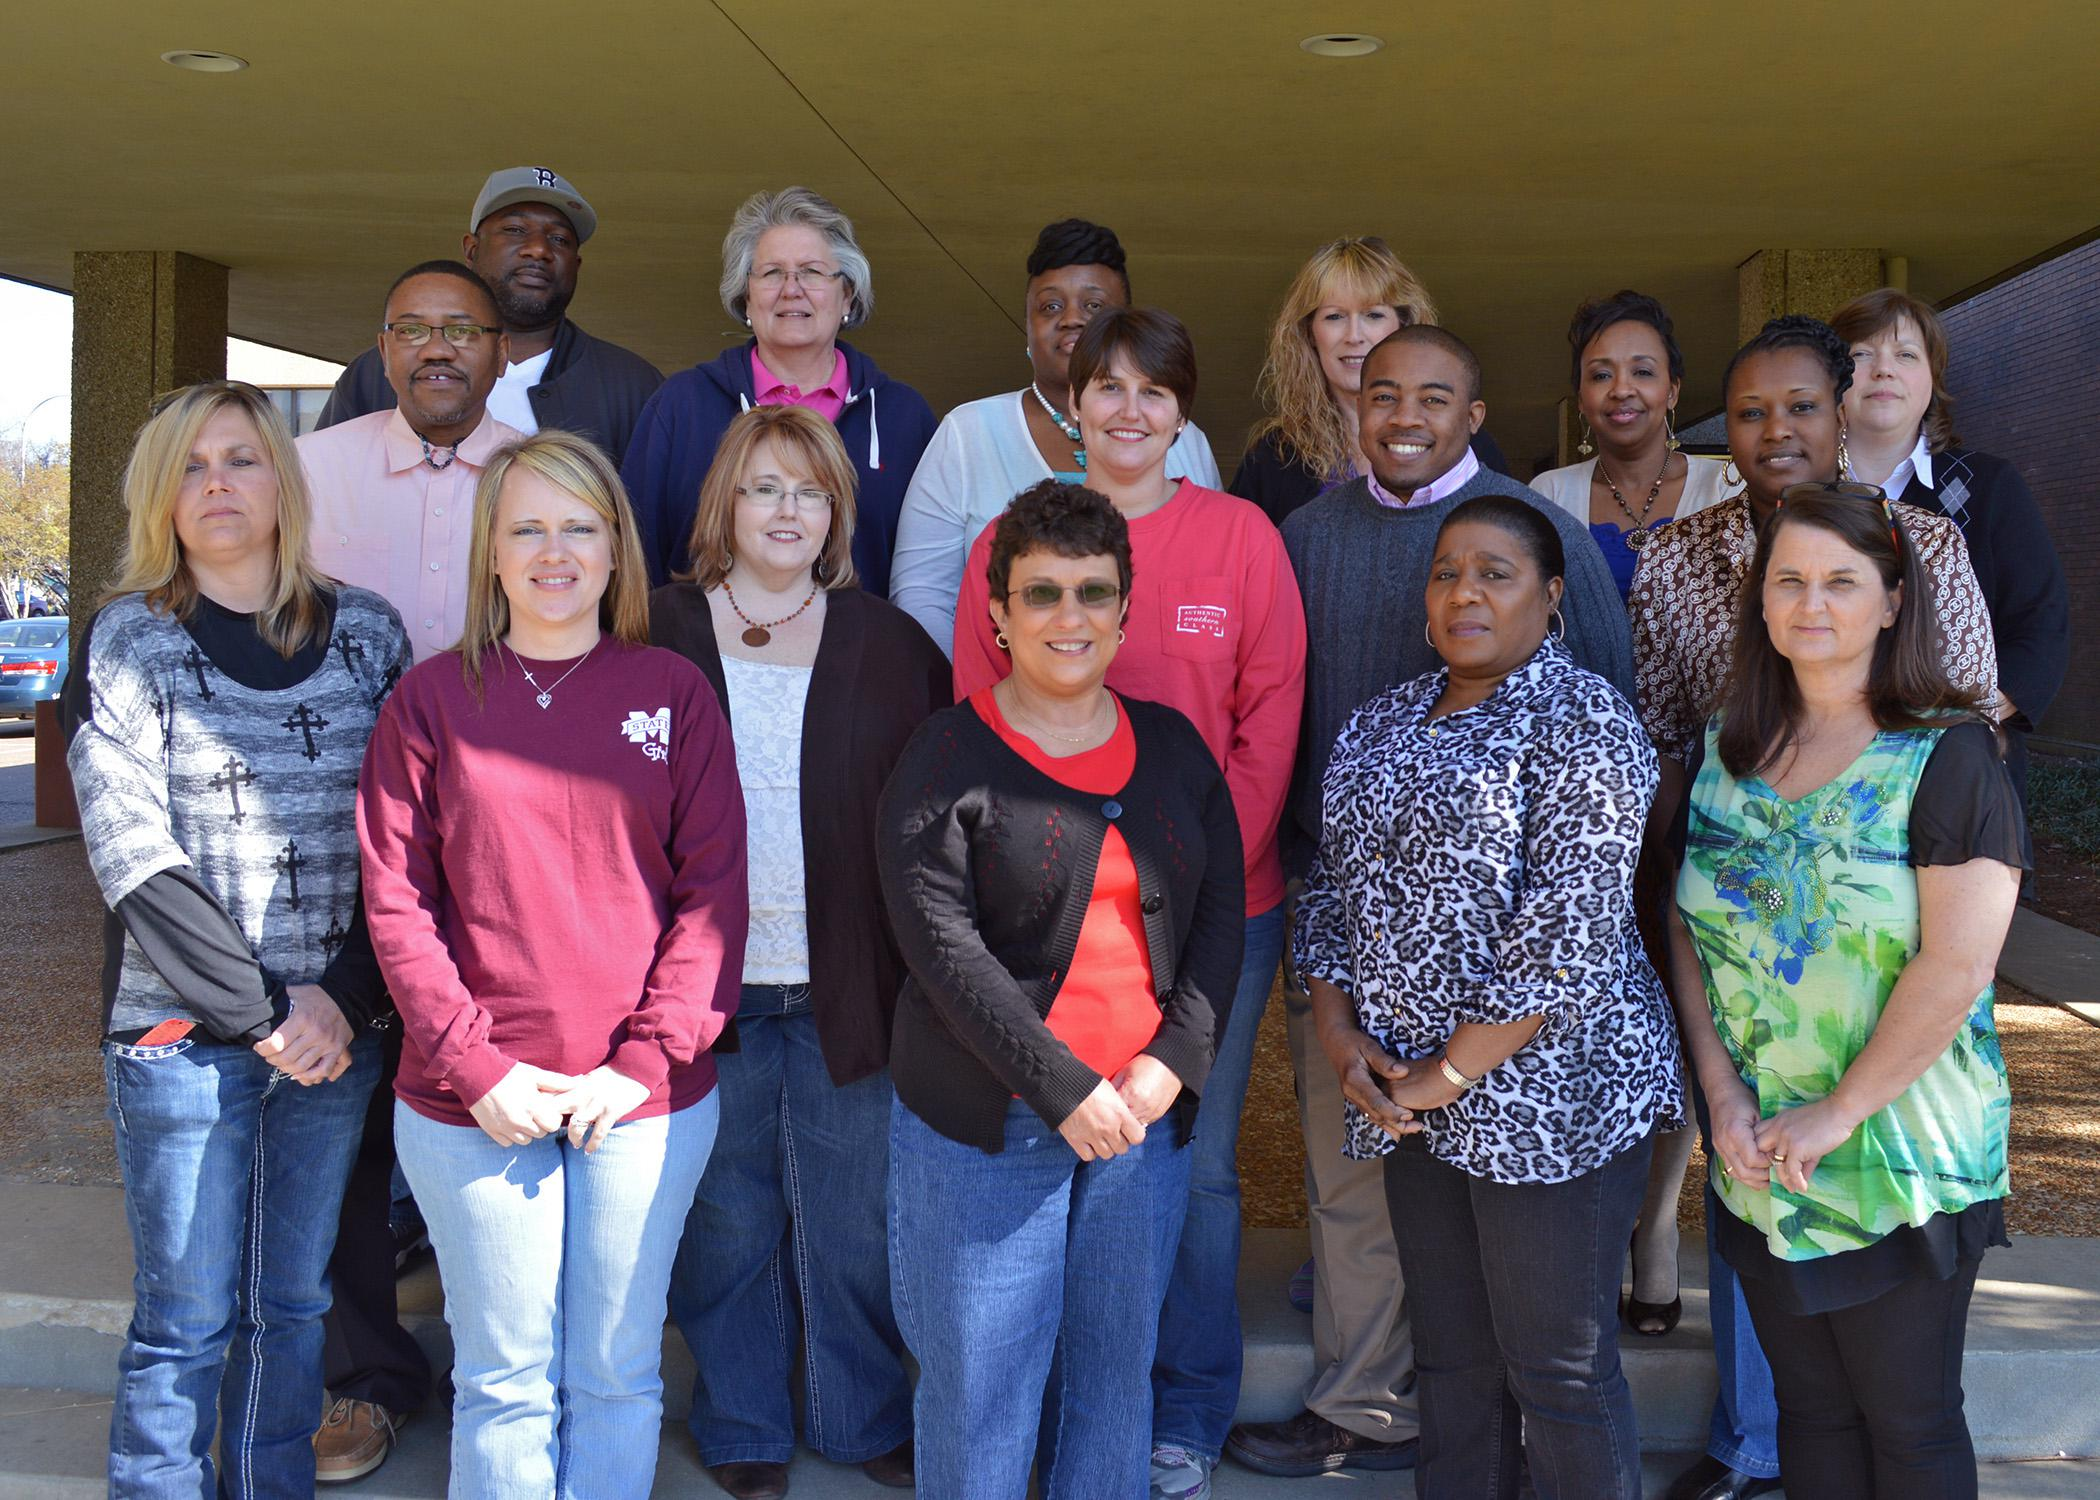 Participants in the 2014 Mississippi Tax Assessor Education and Certification Program training at Mississippi State University are as follows: Front Row, from left: Kimberly Turner and Ashley Carney (Lauderdale County), Cynthia Biles (Harrison), Sallie Price (Quitman) and Angela Burke (Clarke). Second Row: Darryl Ervin (Hinds), Lorna Wright (Pontotoc), Allison Culver (Desoto), Lee Ward (Hinds) and Alice Smith (Quitman). Third Row: Richard Caston (Hinds), Sandra Lollis (Harrison), Annie Peebles (Neshoba), Su